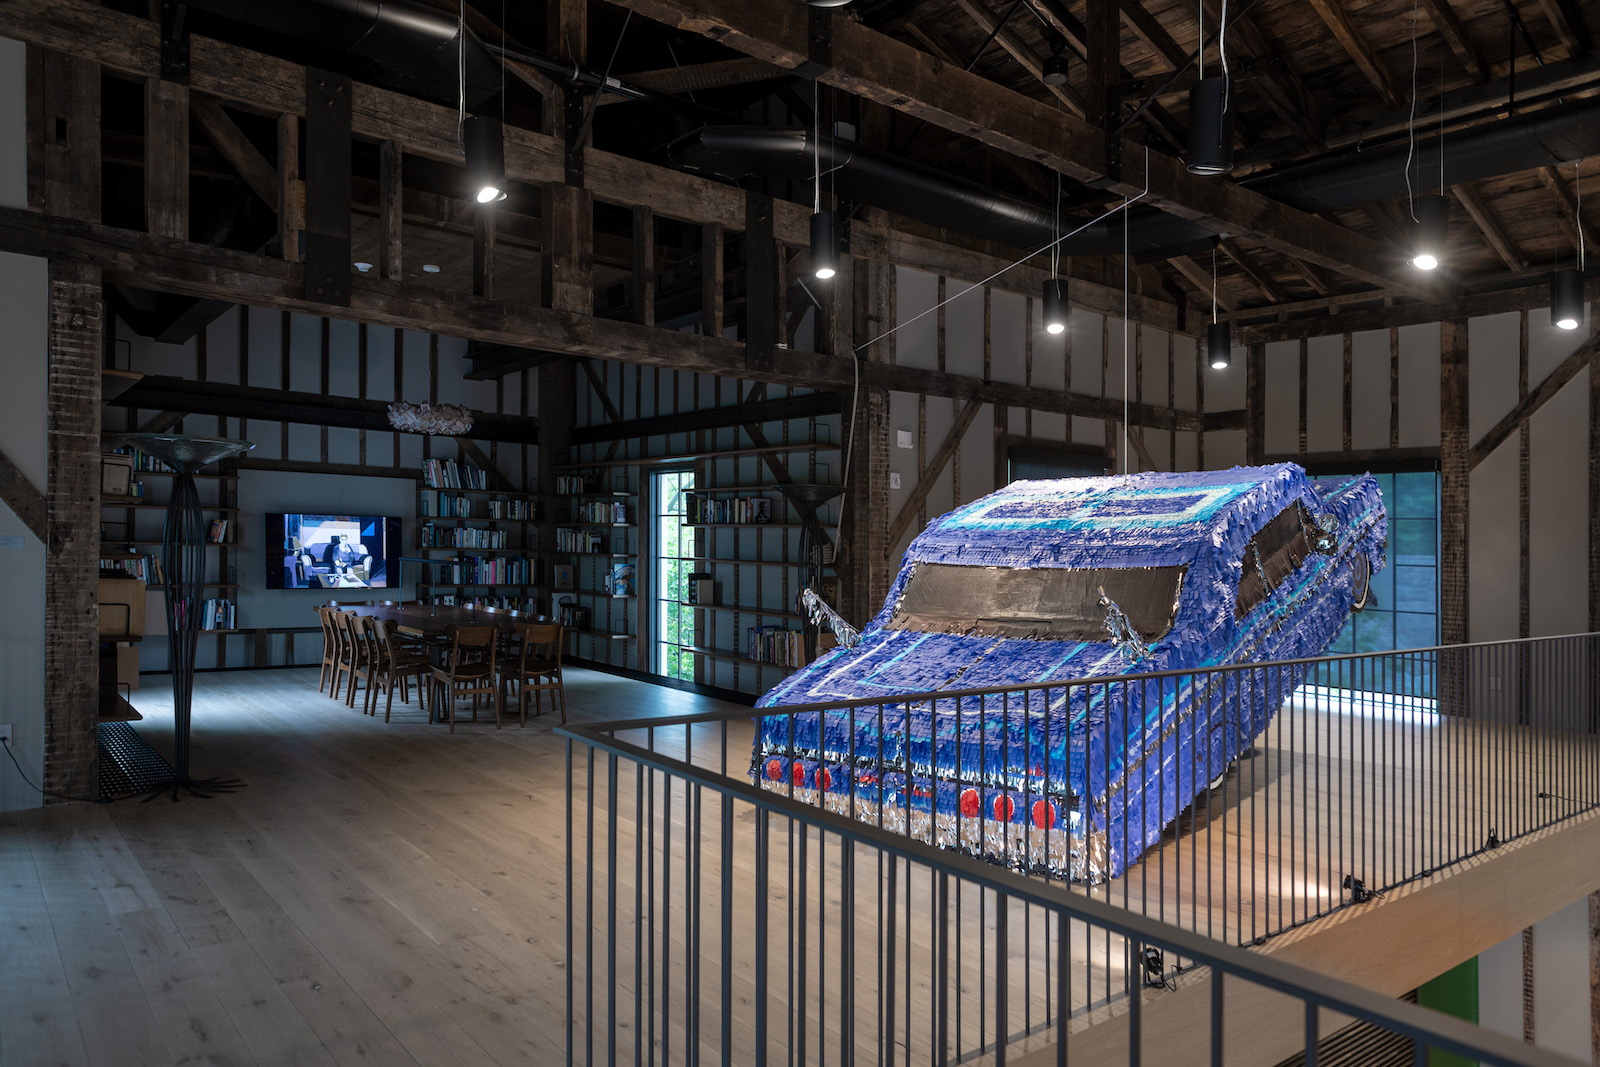 installation view of road rage at the church, showing sparkling blue car made of confetti pieces hanging